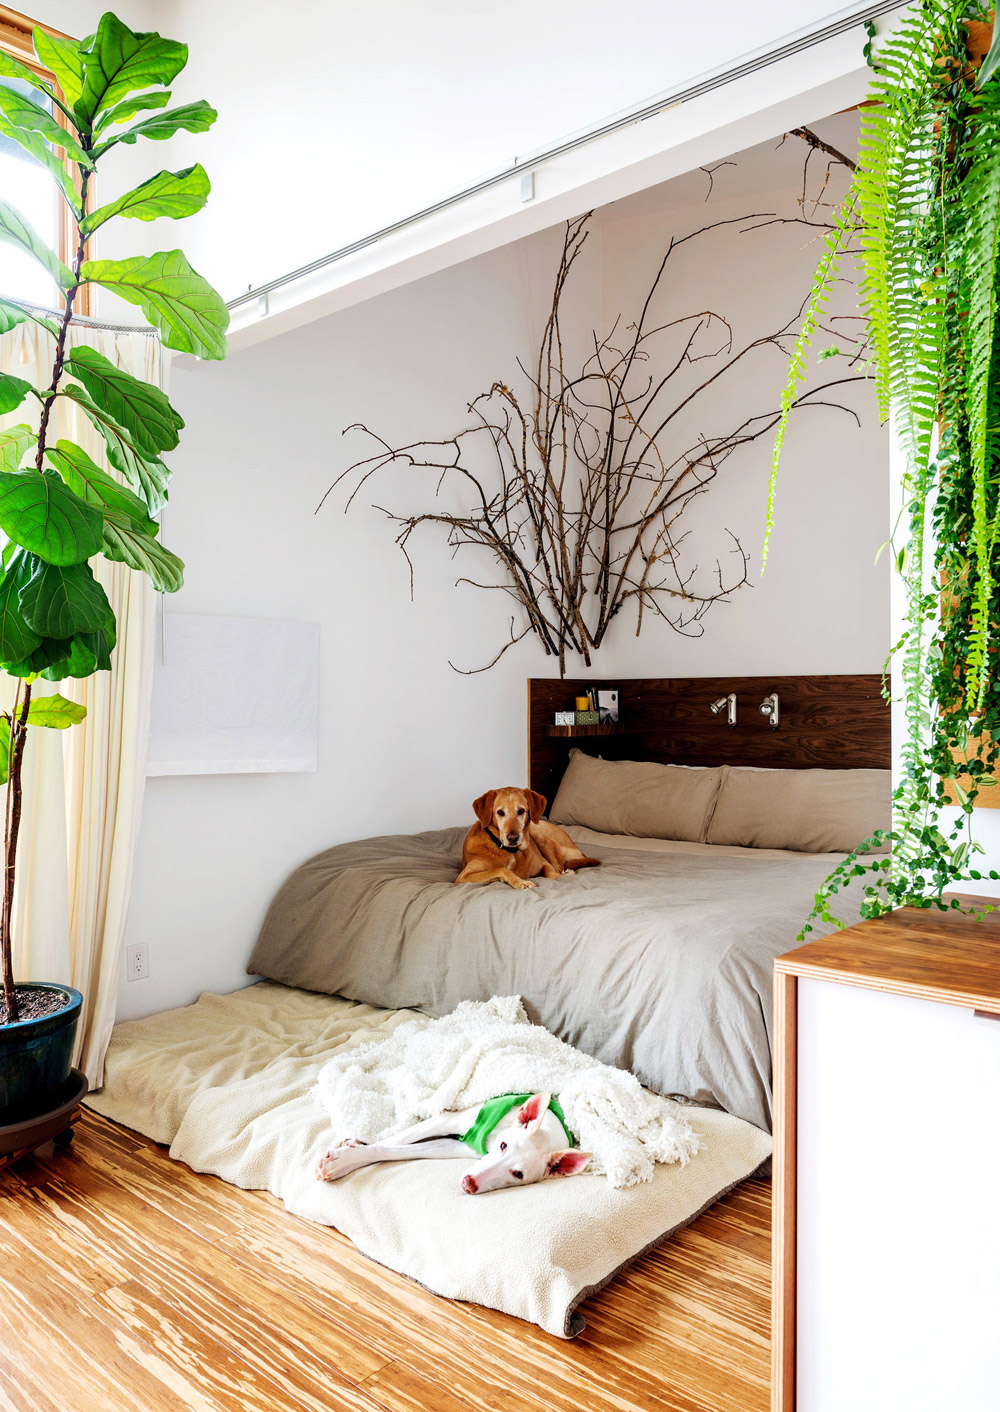 Design Highlight Bedrooms Using Live Plants As Decor